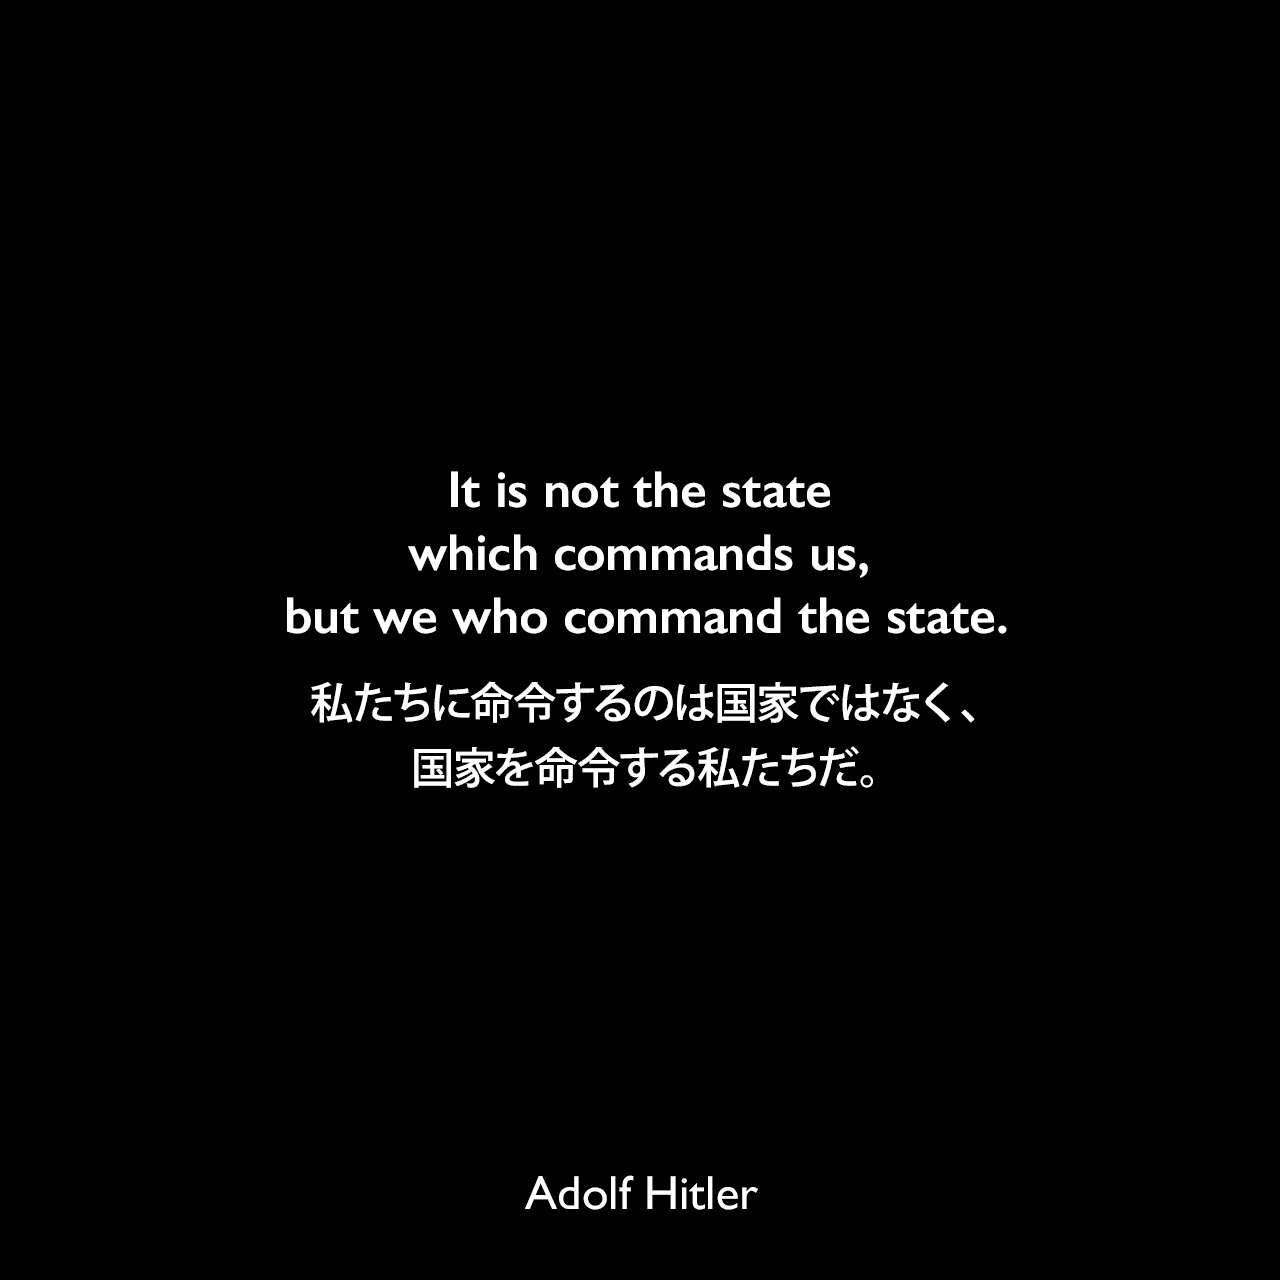 It is not the state which commands us, but we who command the state.私たちに命令するのは国家ではなく、国家を命令する私たちだ。- 映画「意志の勝利」よりAdolf Hitler